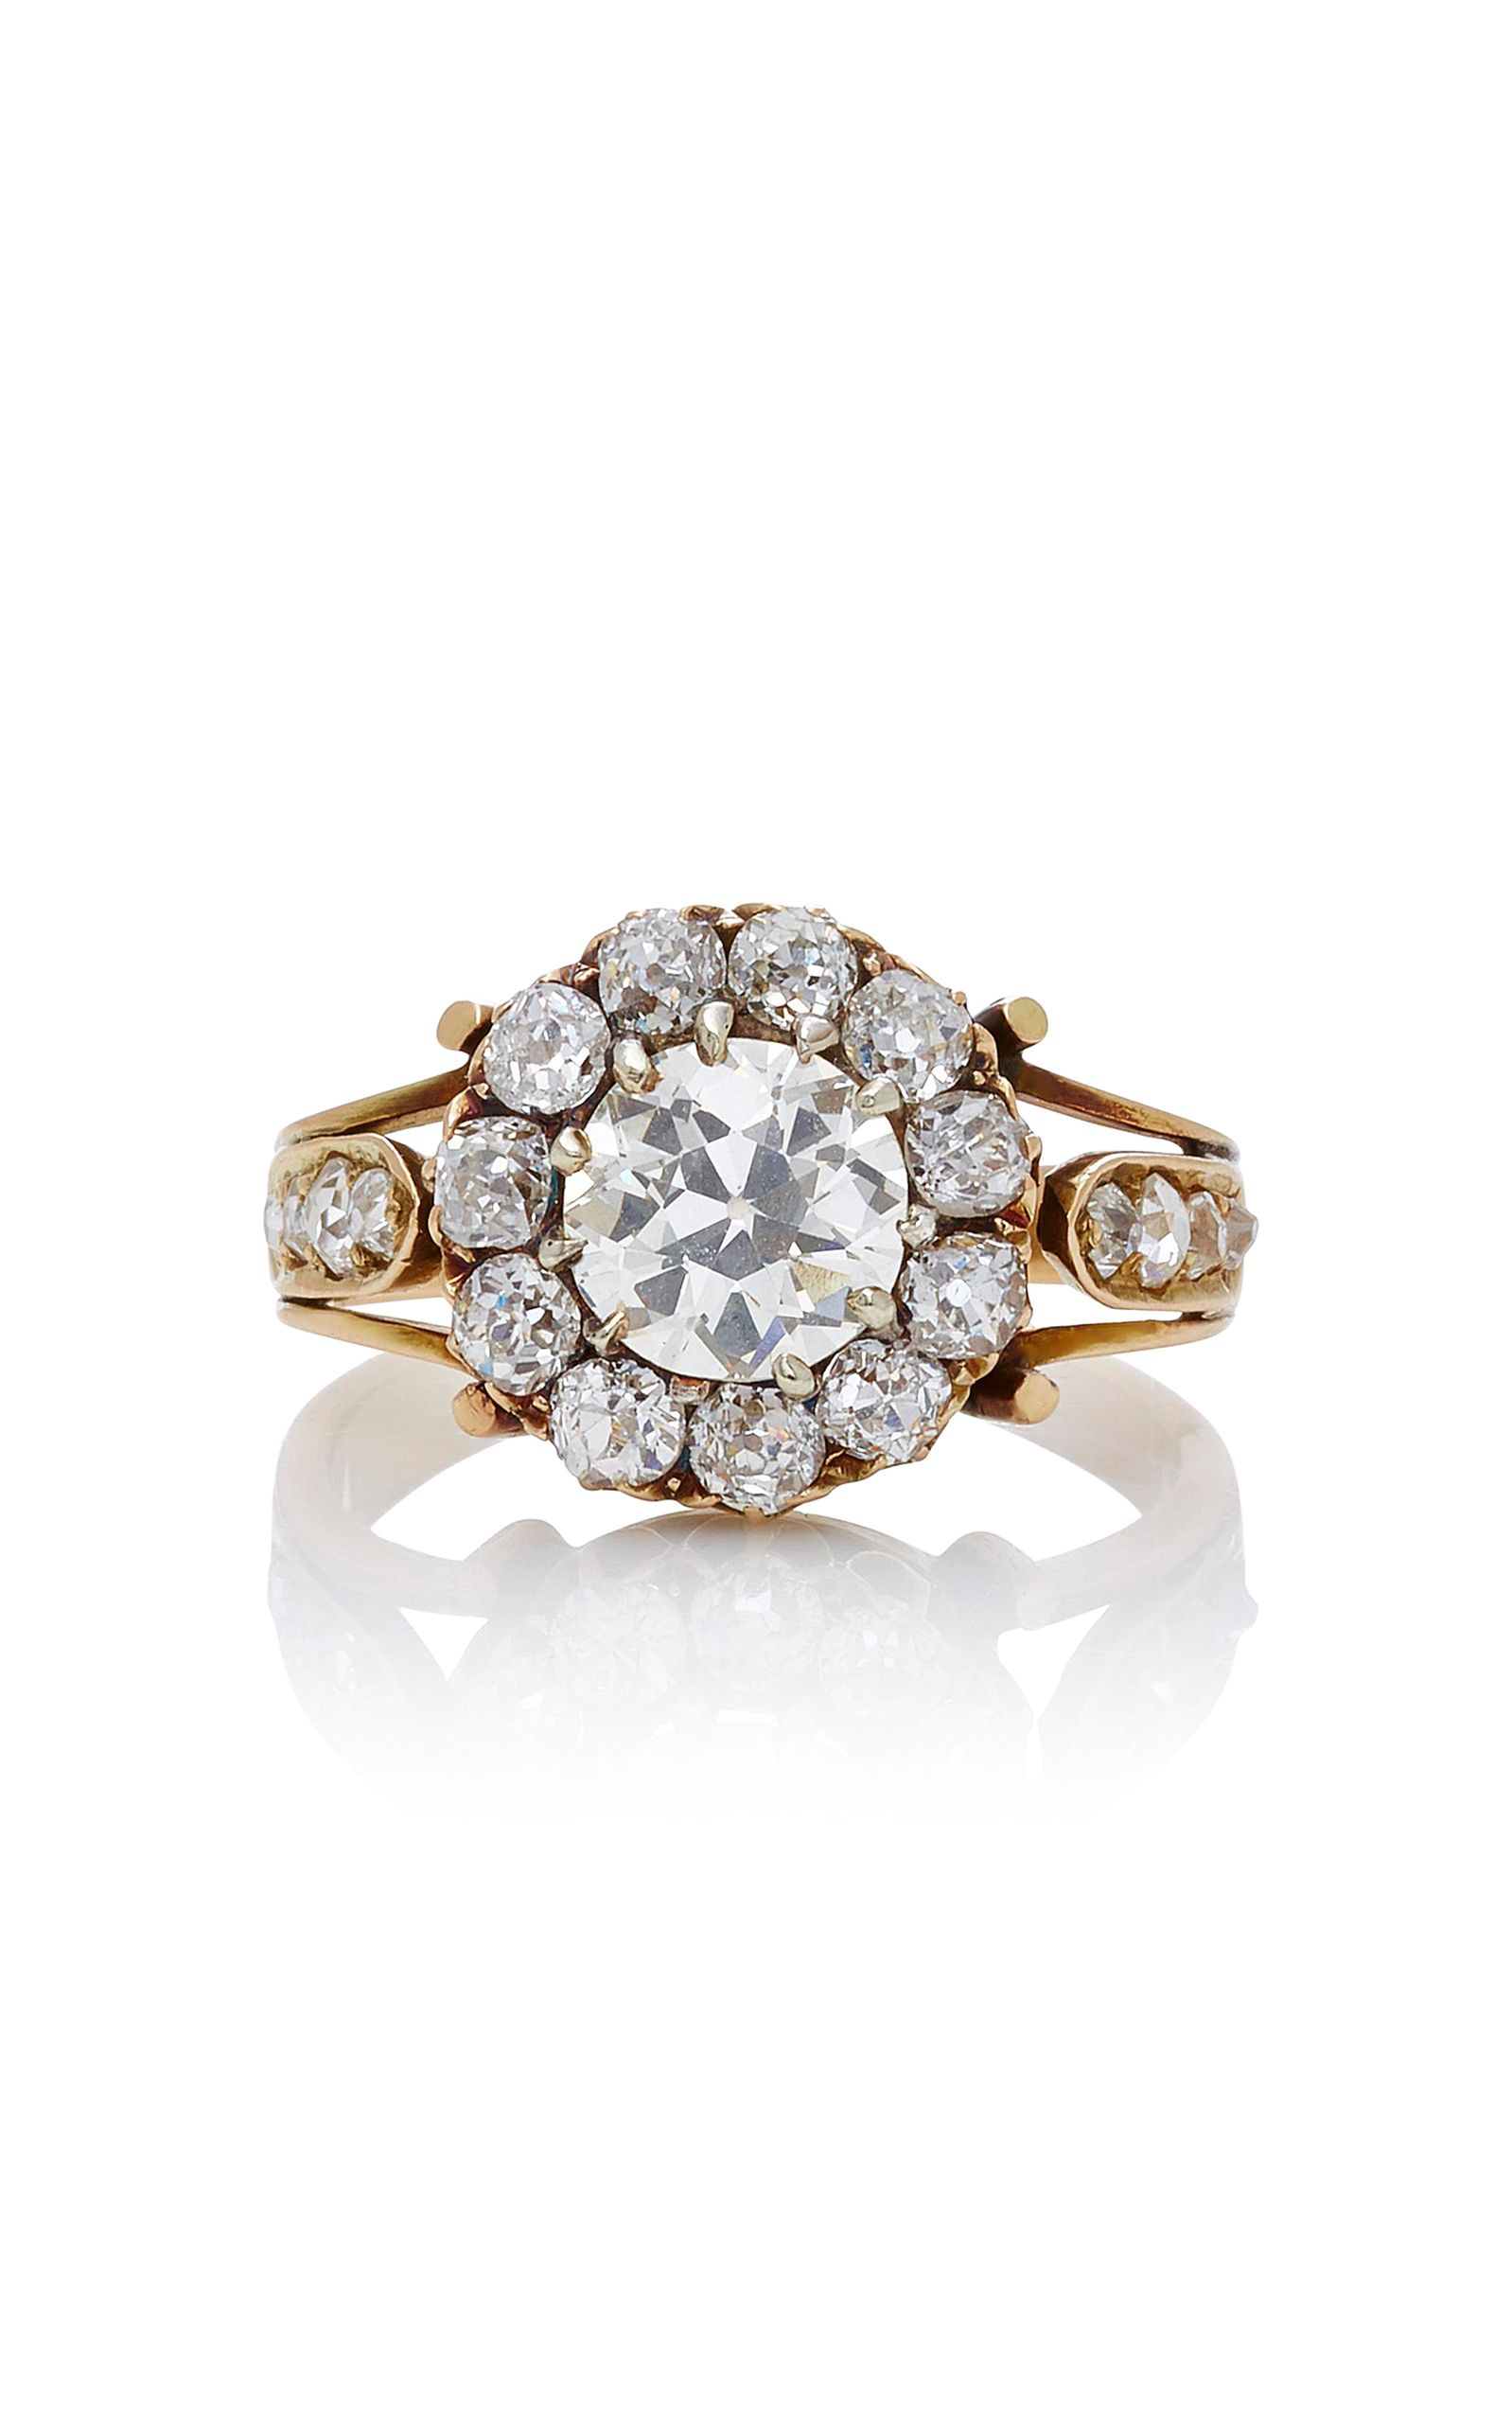 range paris portofino stone introduces collection to jenny bands diamond packham exclusive multi ring carat goldsmiths new claw platinum collections